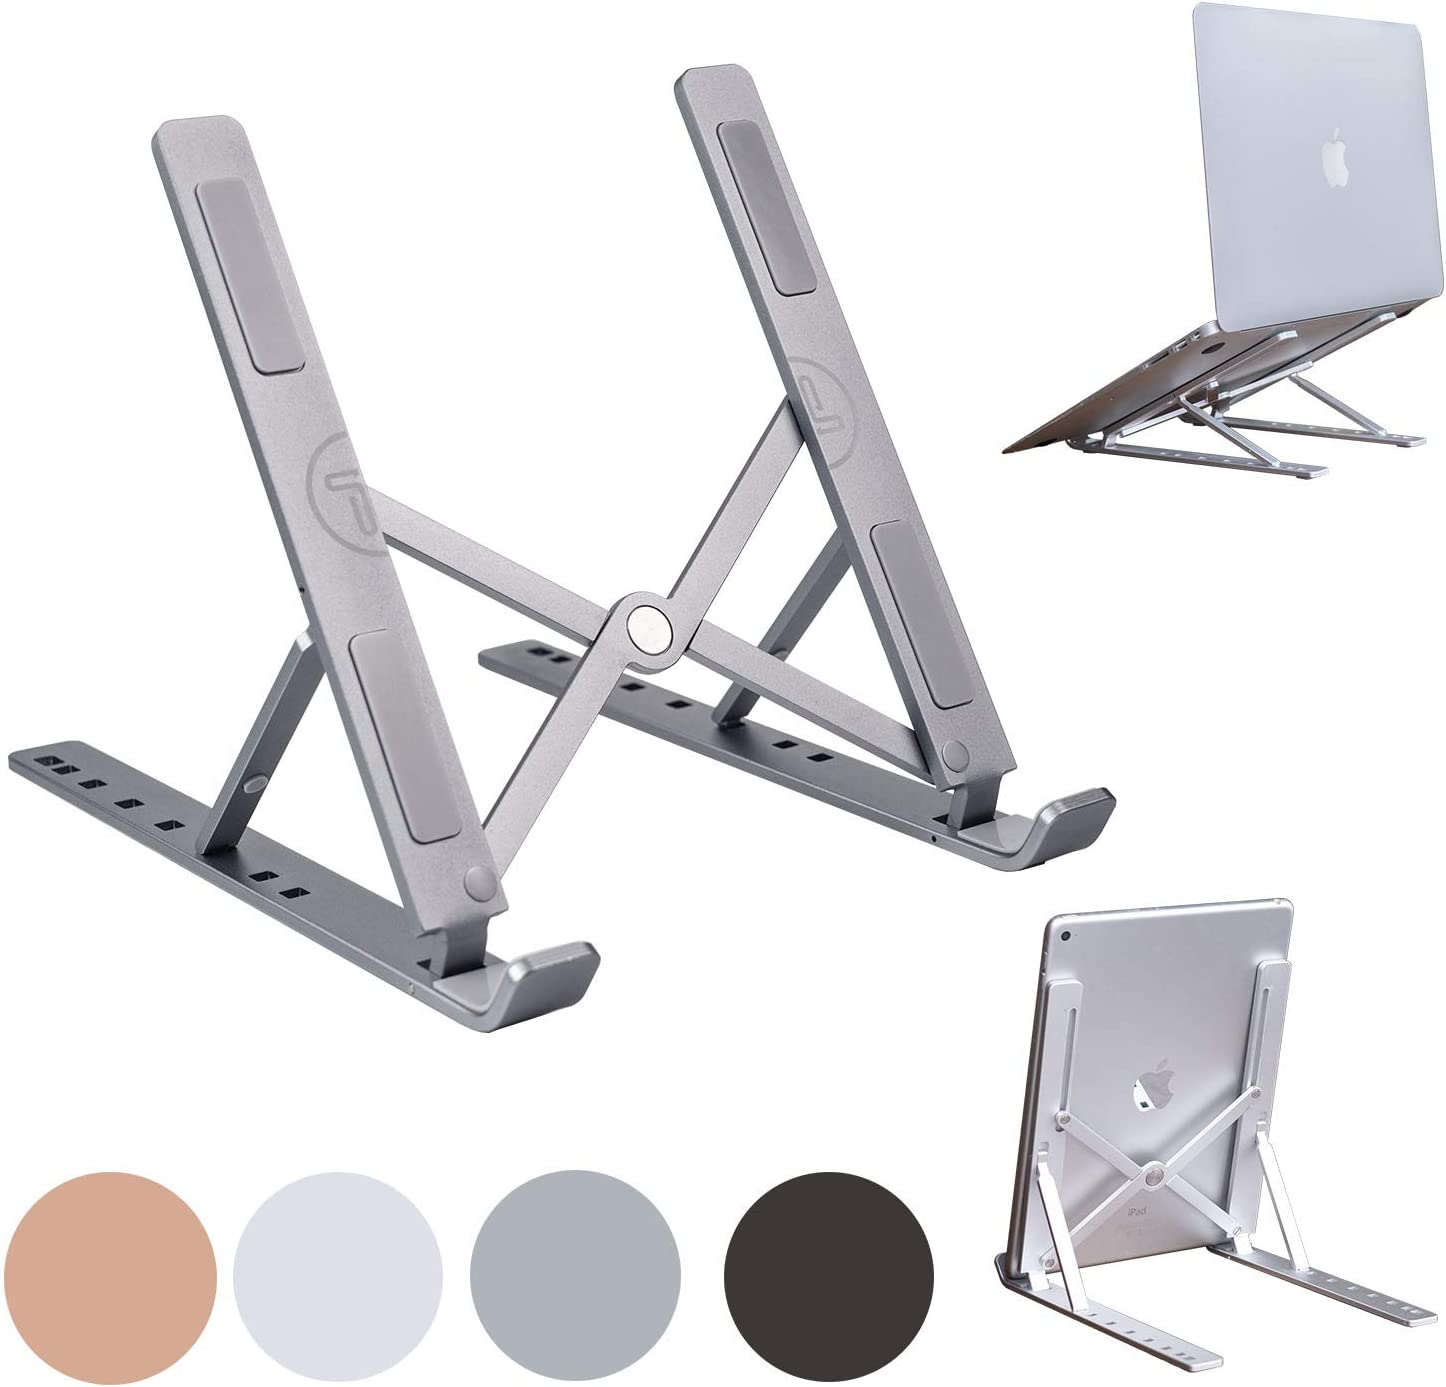 Portable Laptop Stand Foldable Aluminum Adjustable Laptop Stand for Desk with 7 Angle Adjustable Stand for MacBook Air, MacBook Pro, iPad and Tablet, Laptop. (Gray)